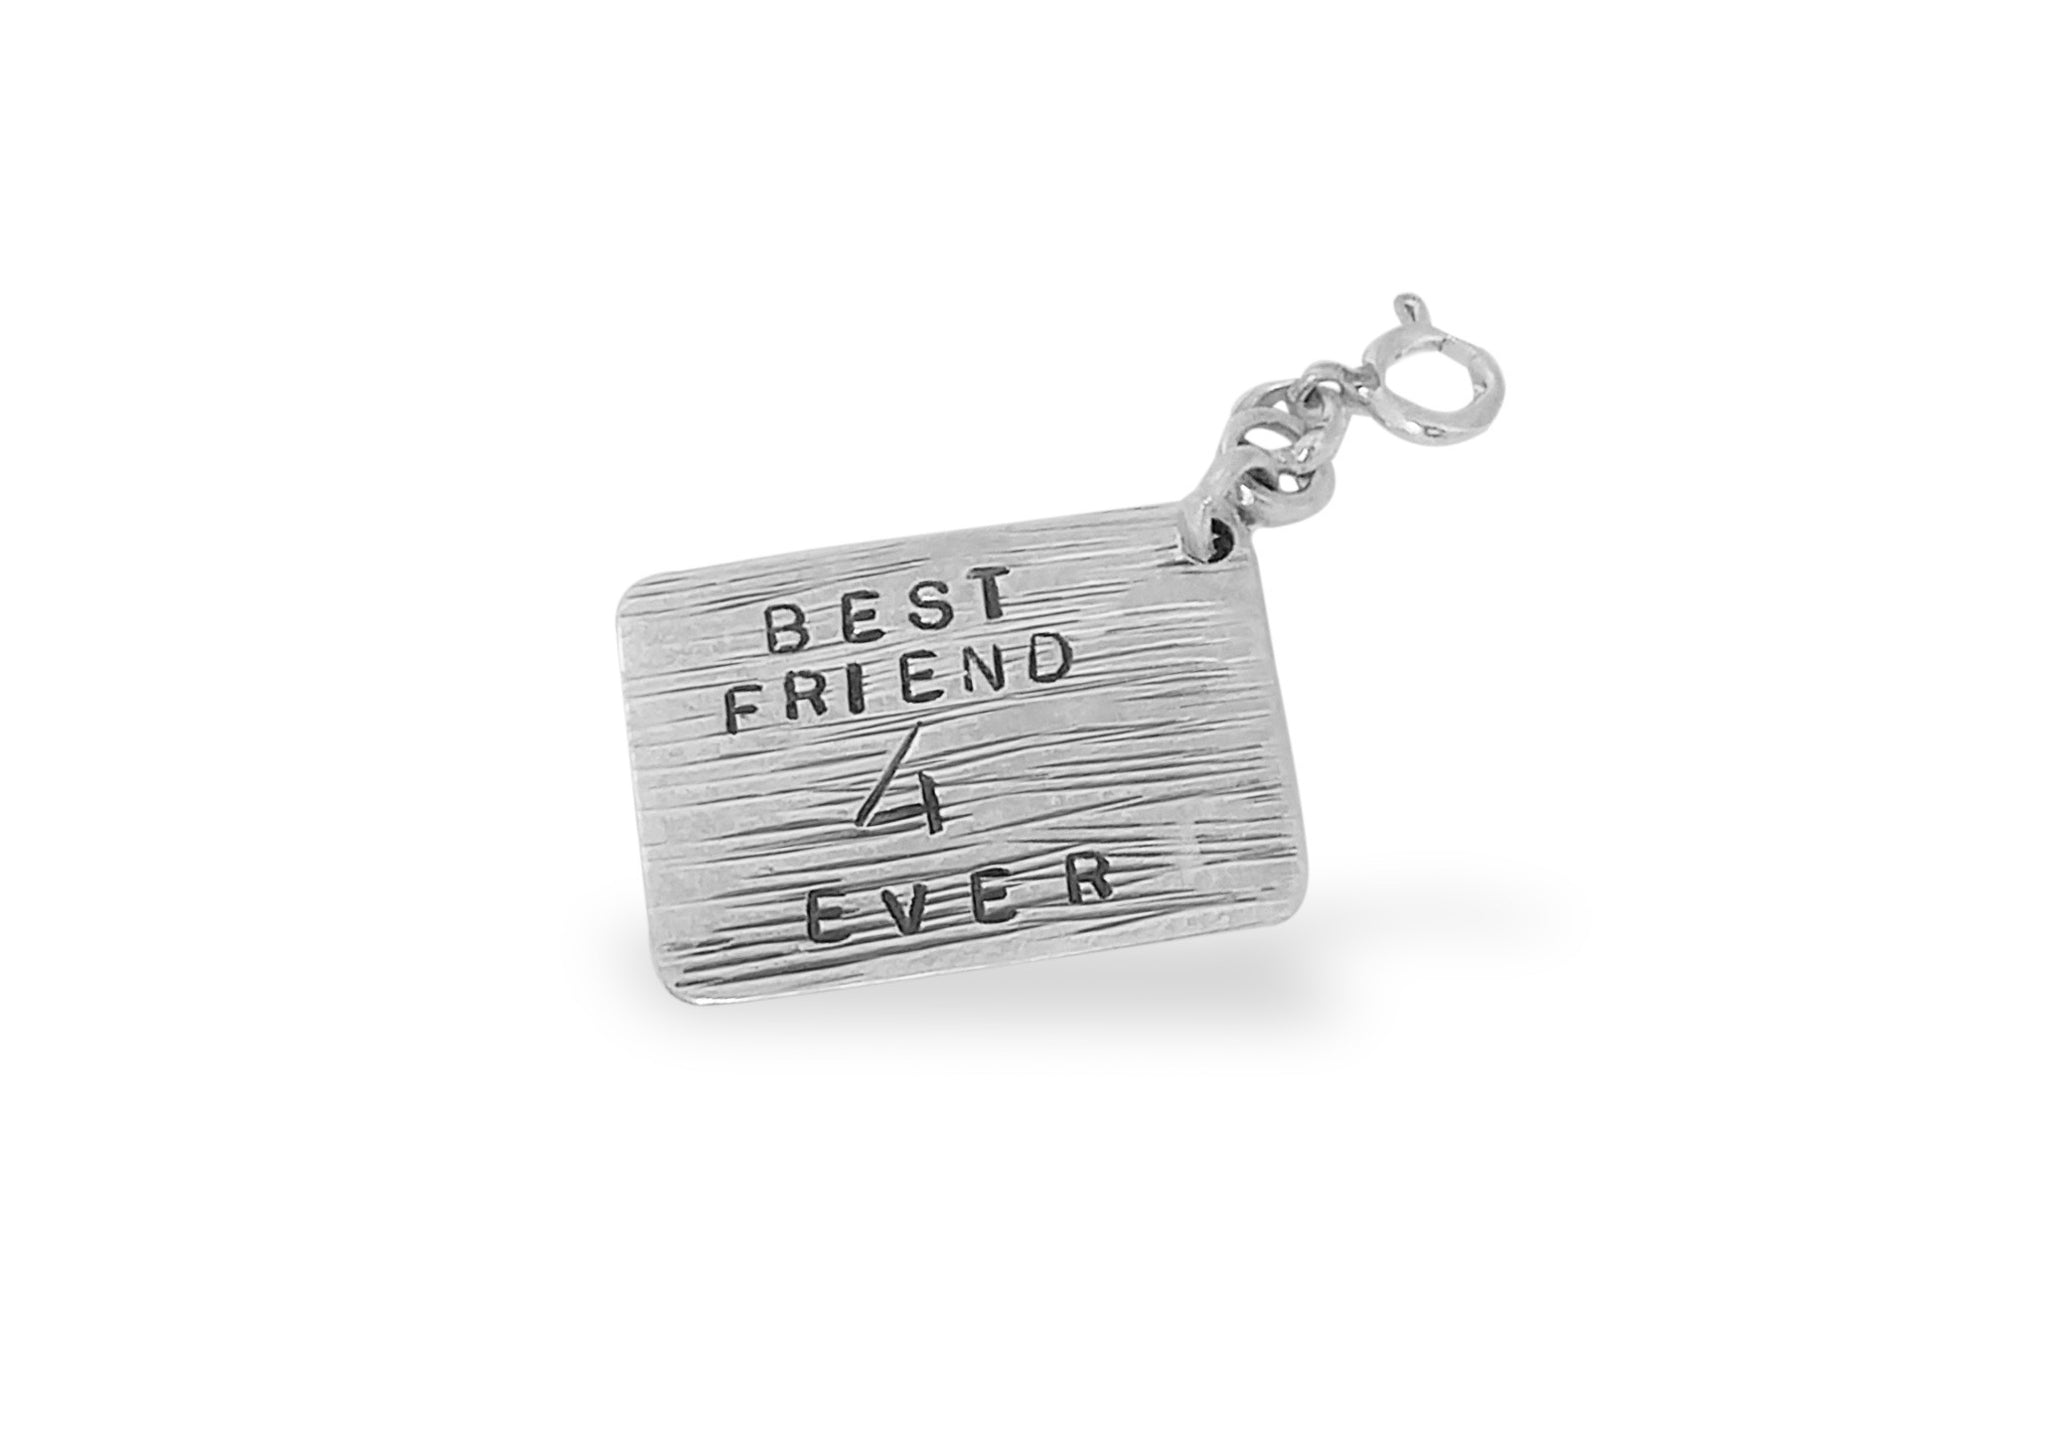 Best Friend 4 Ever Charm - Agabhumi